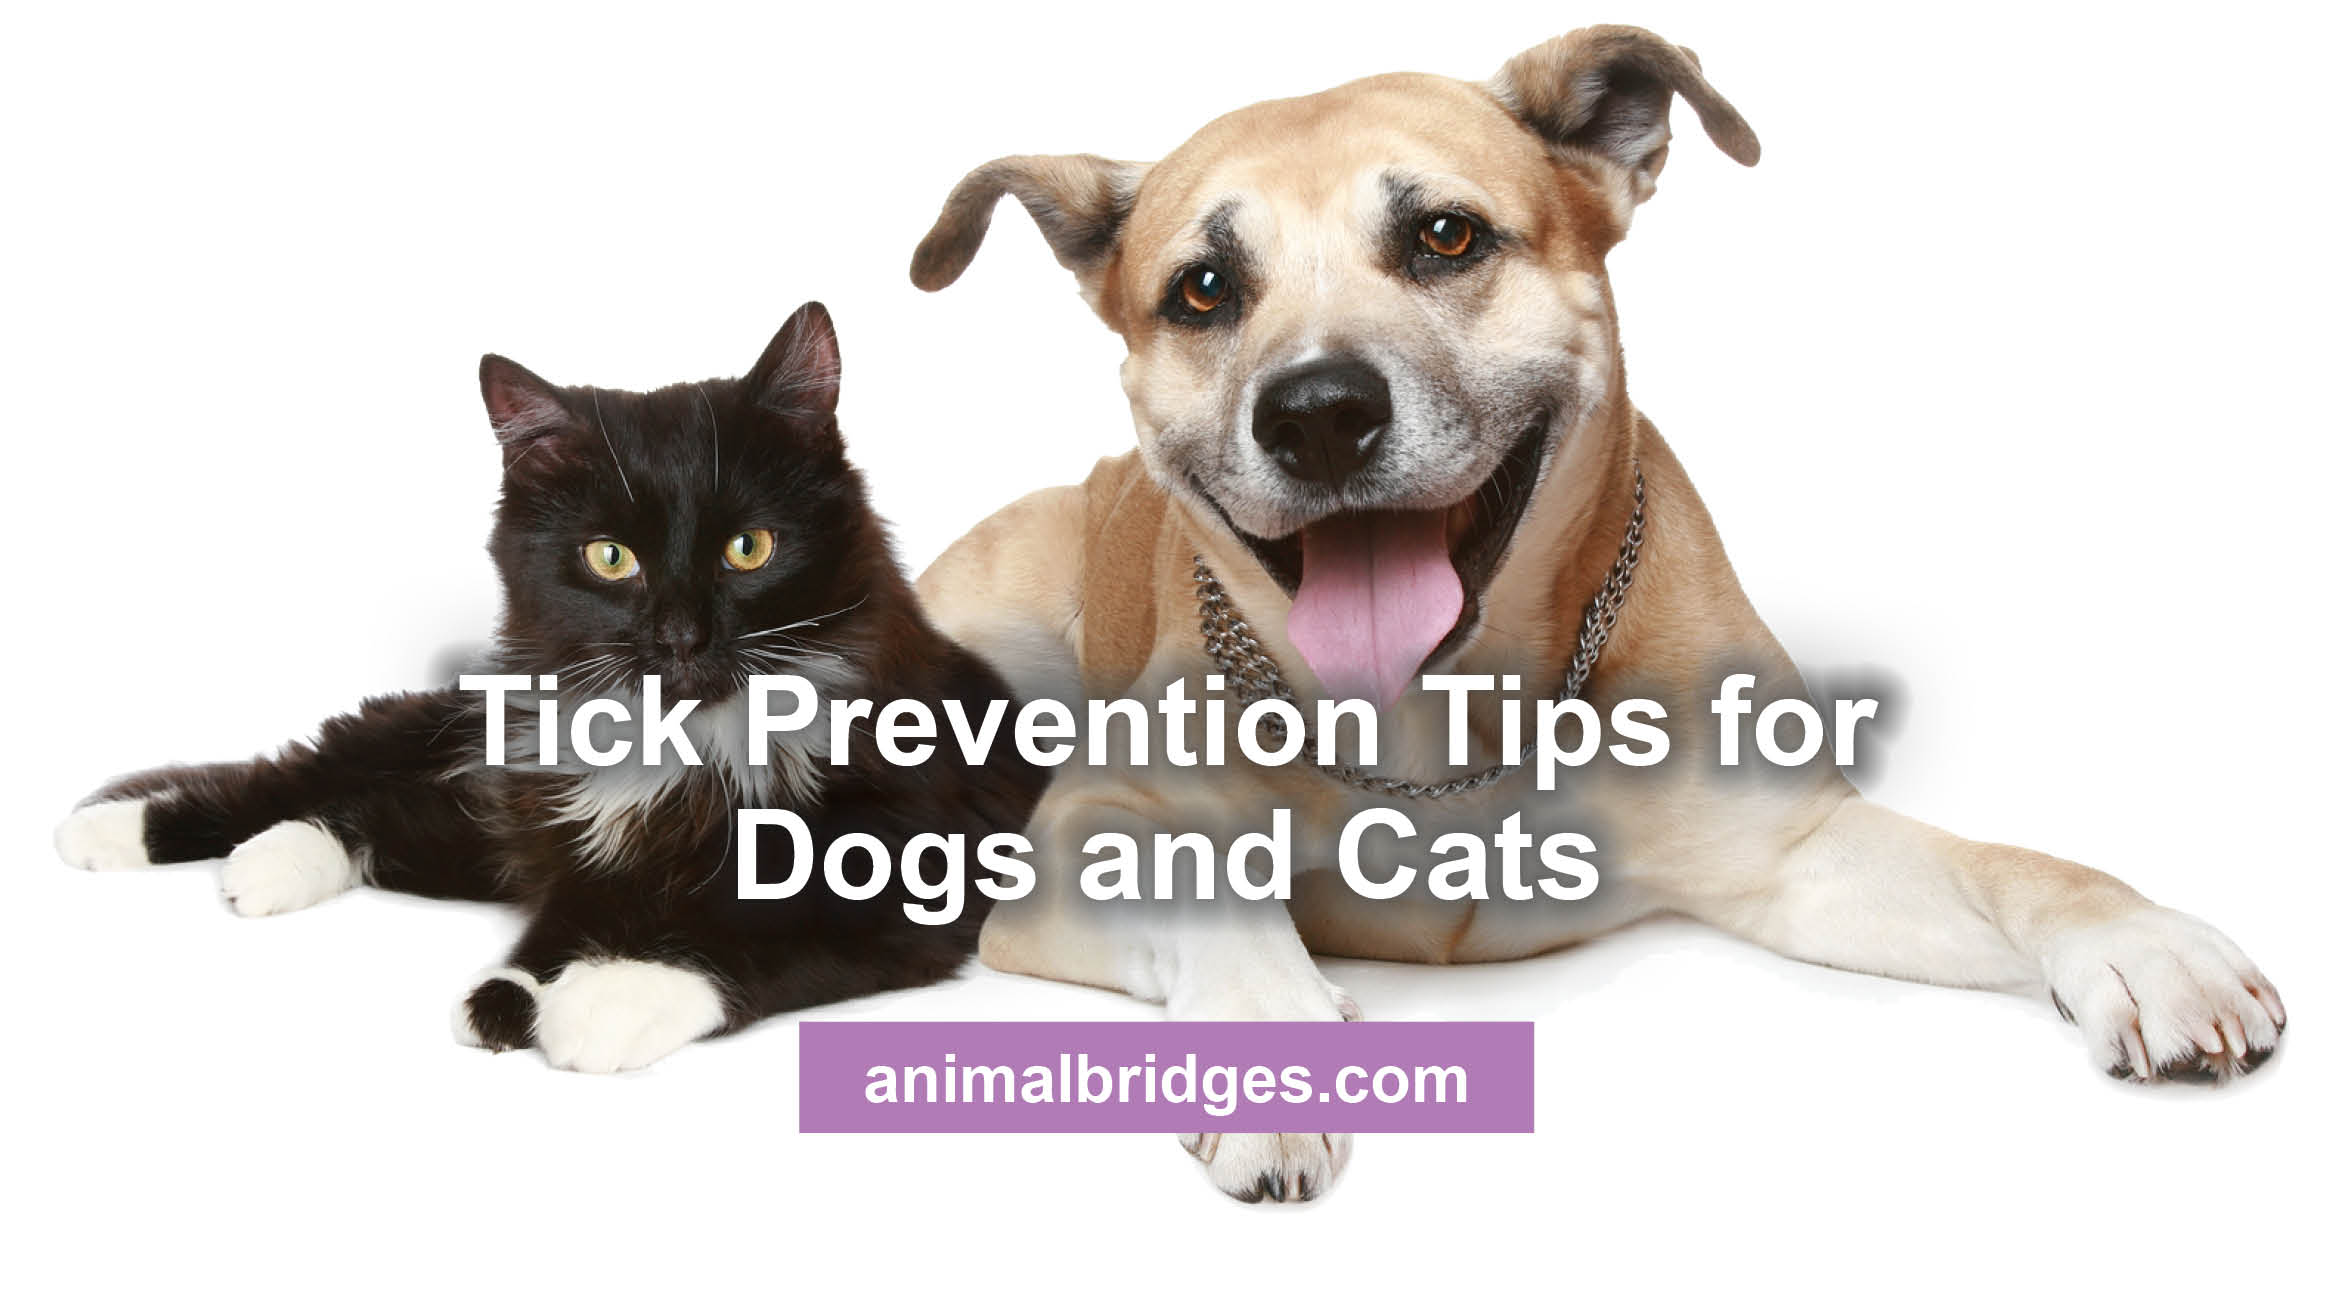 Tick Prevention Tips for Dogs and Cats